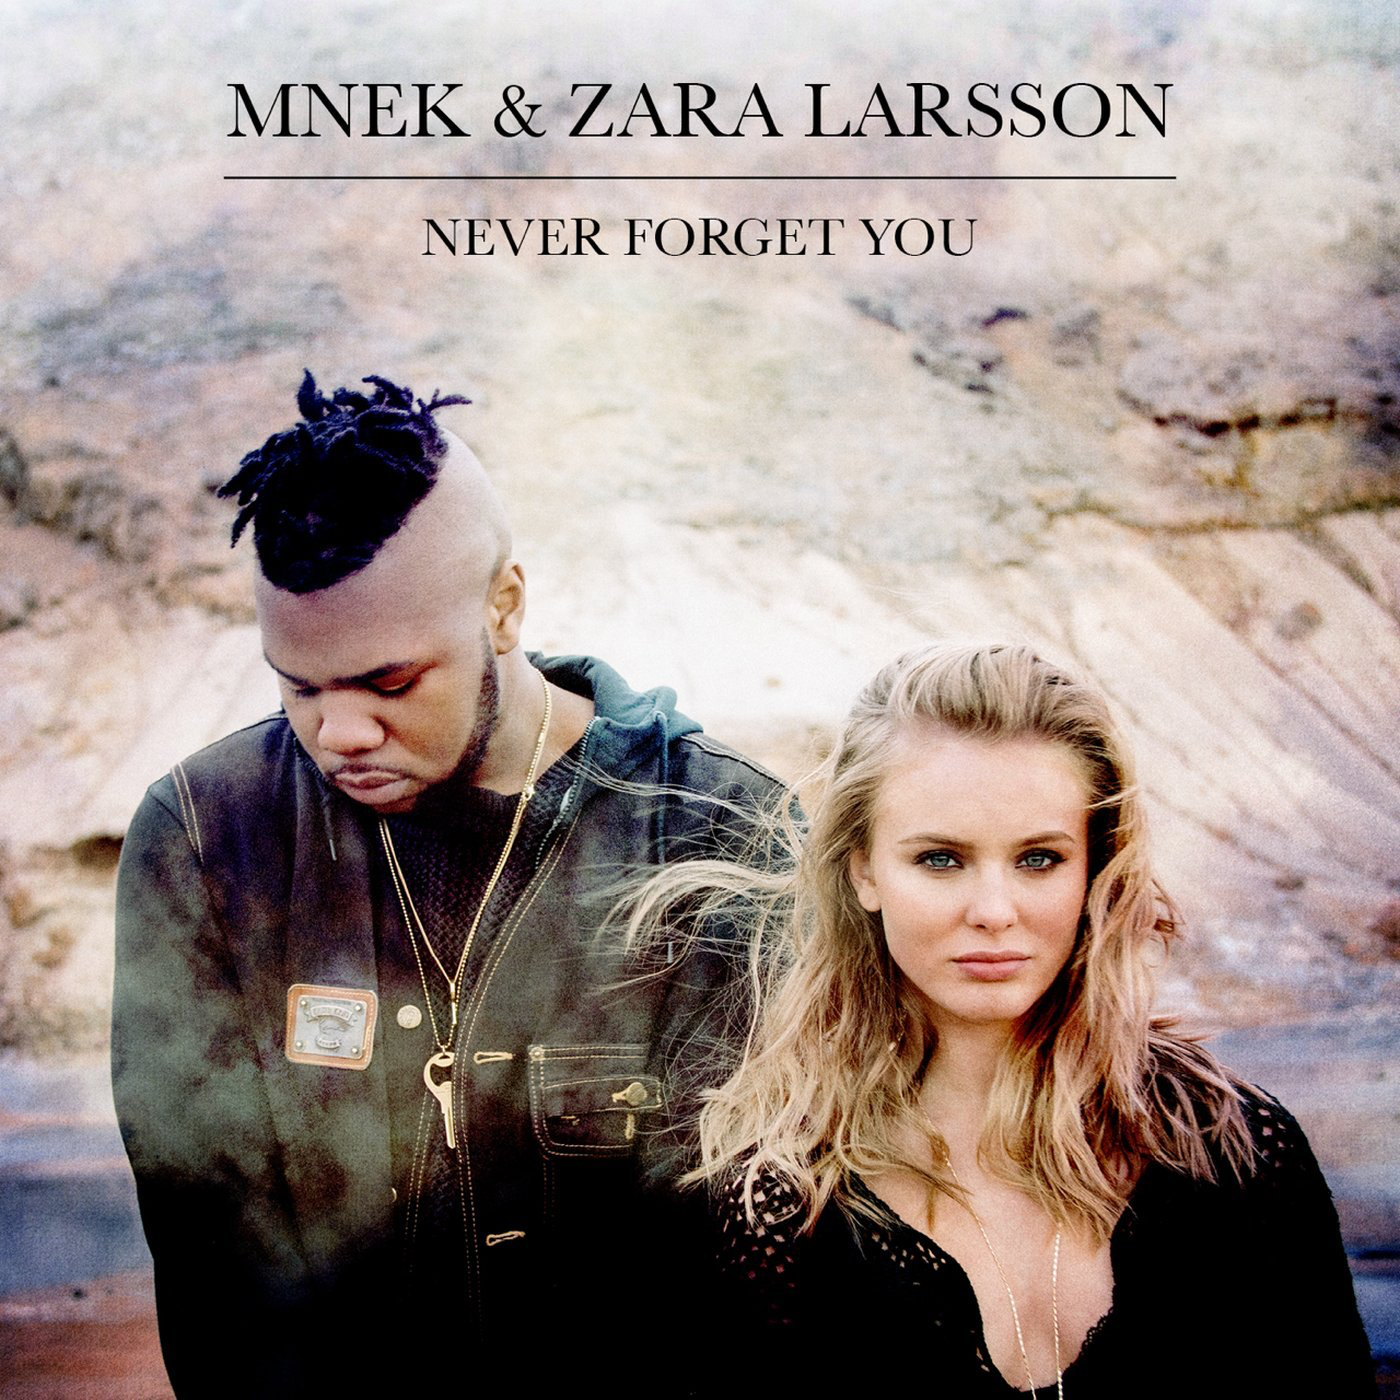 Mnek zara larsson never forget you